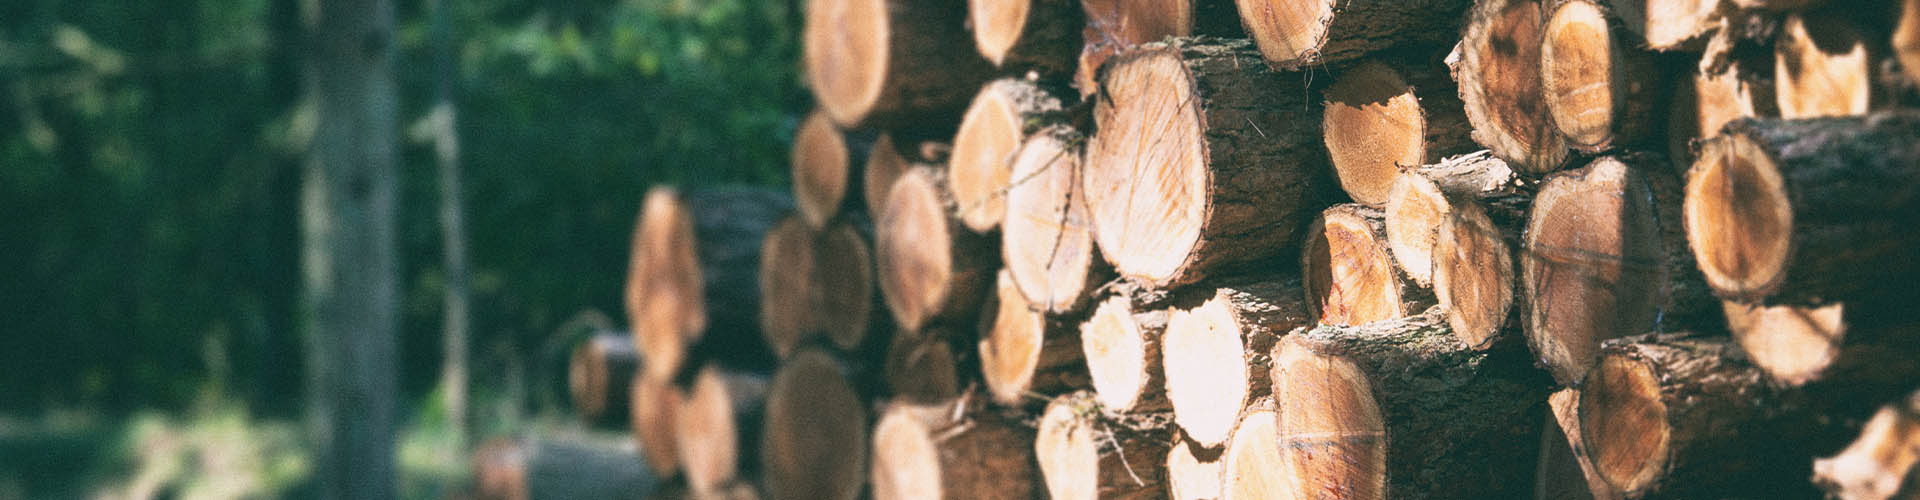 this image shows FSC certified wood